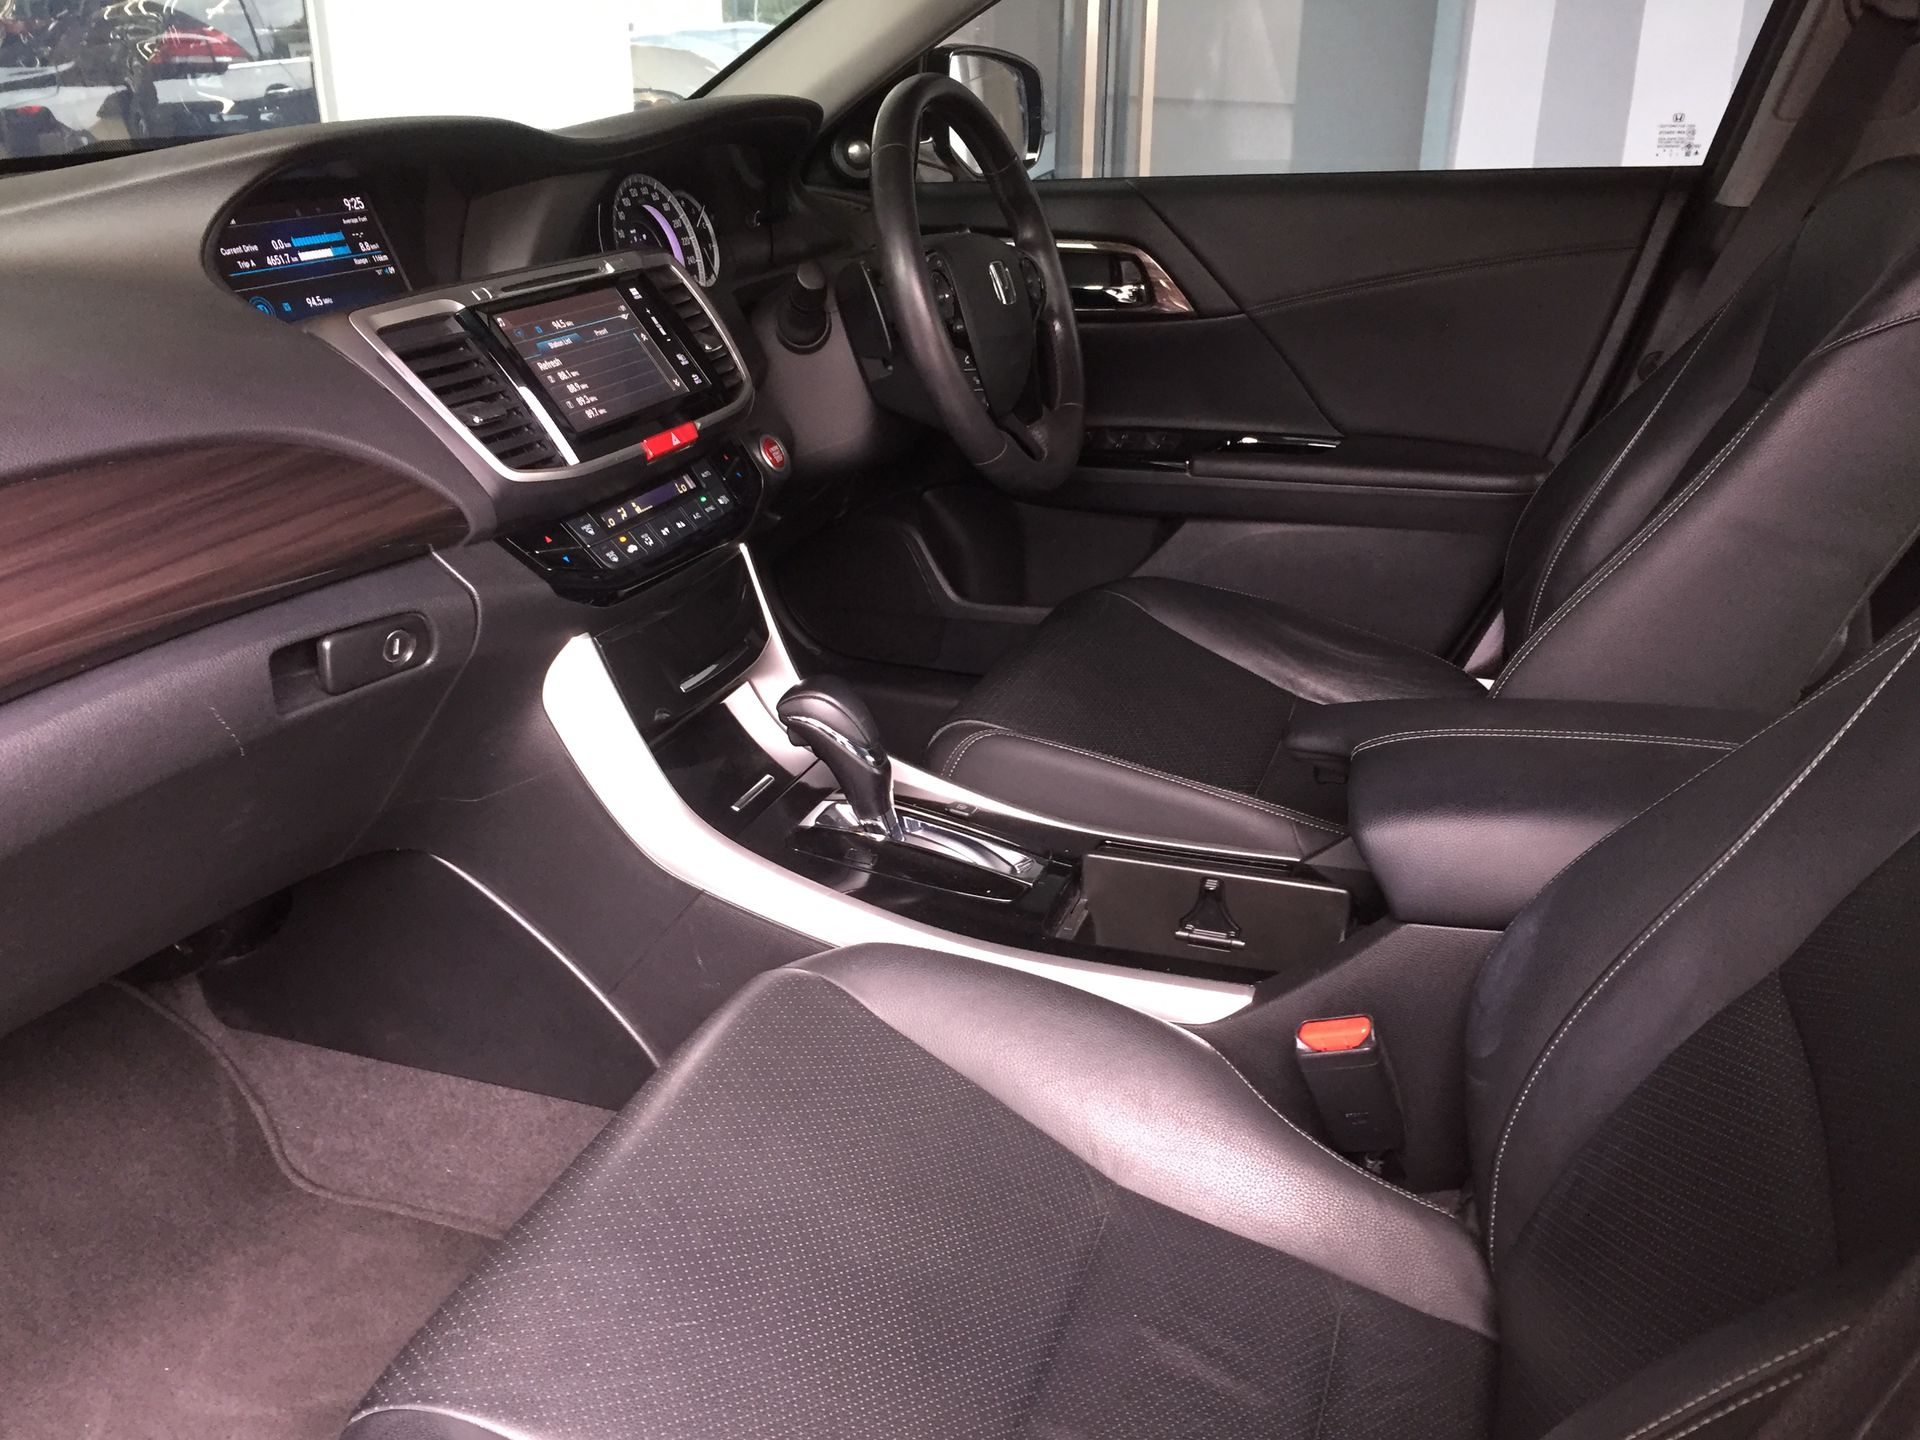 2017 Honda Accord 2.4L I-VTEC (A)